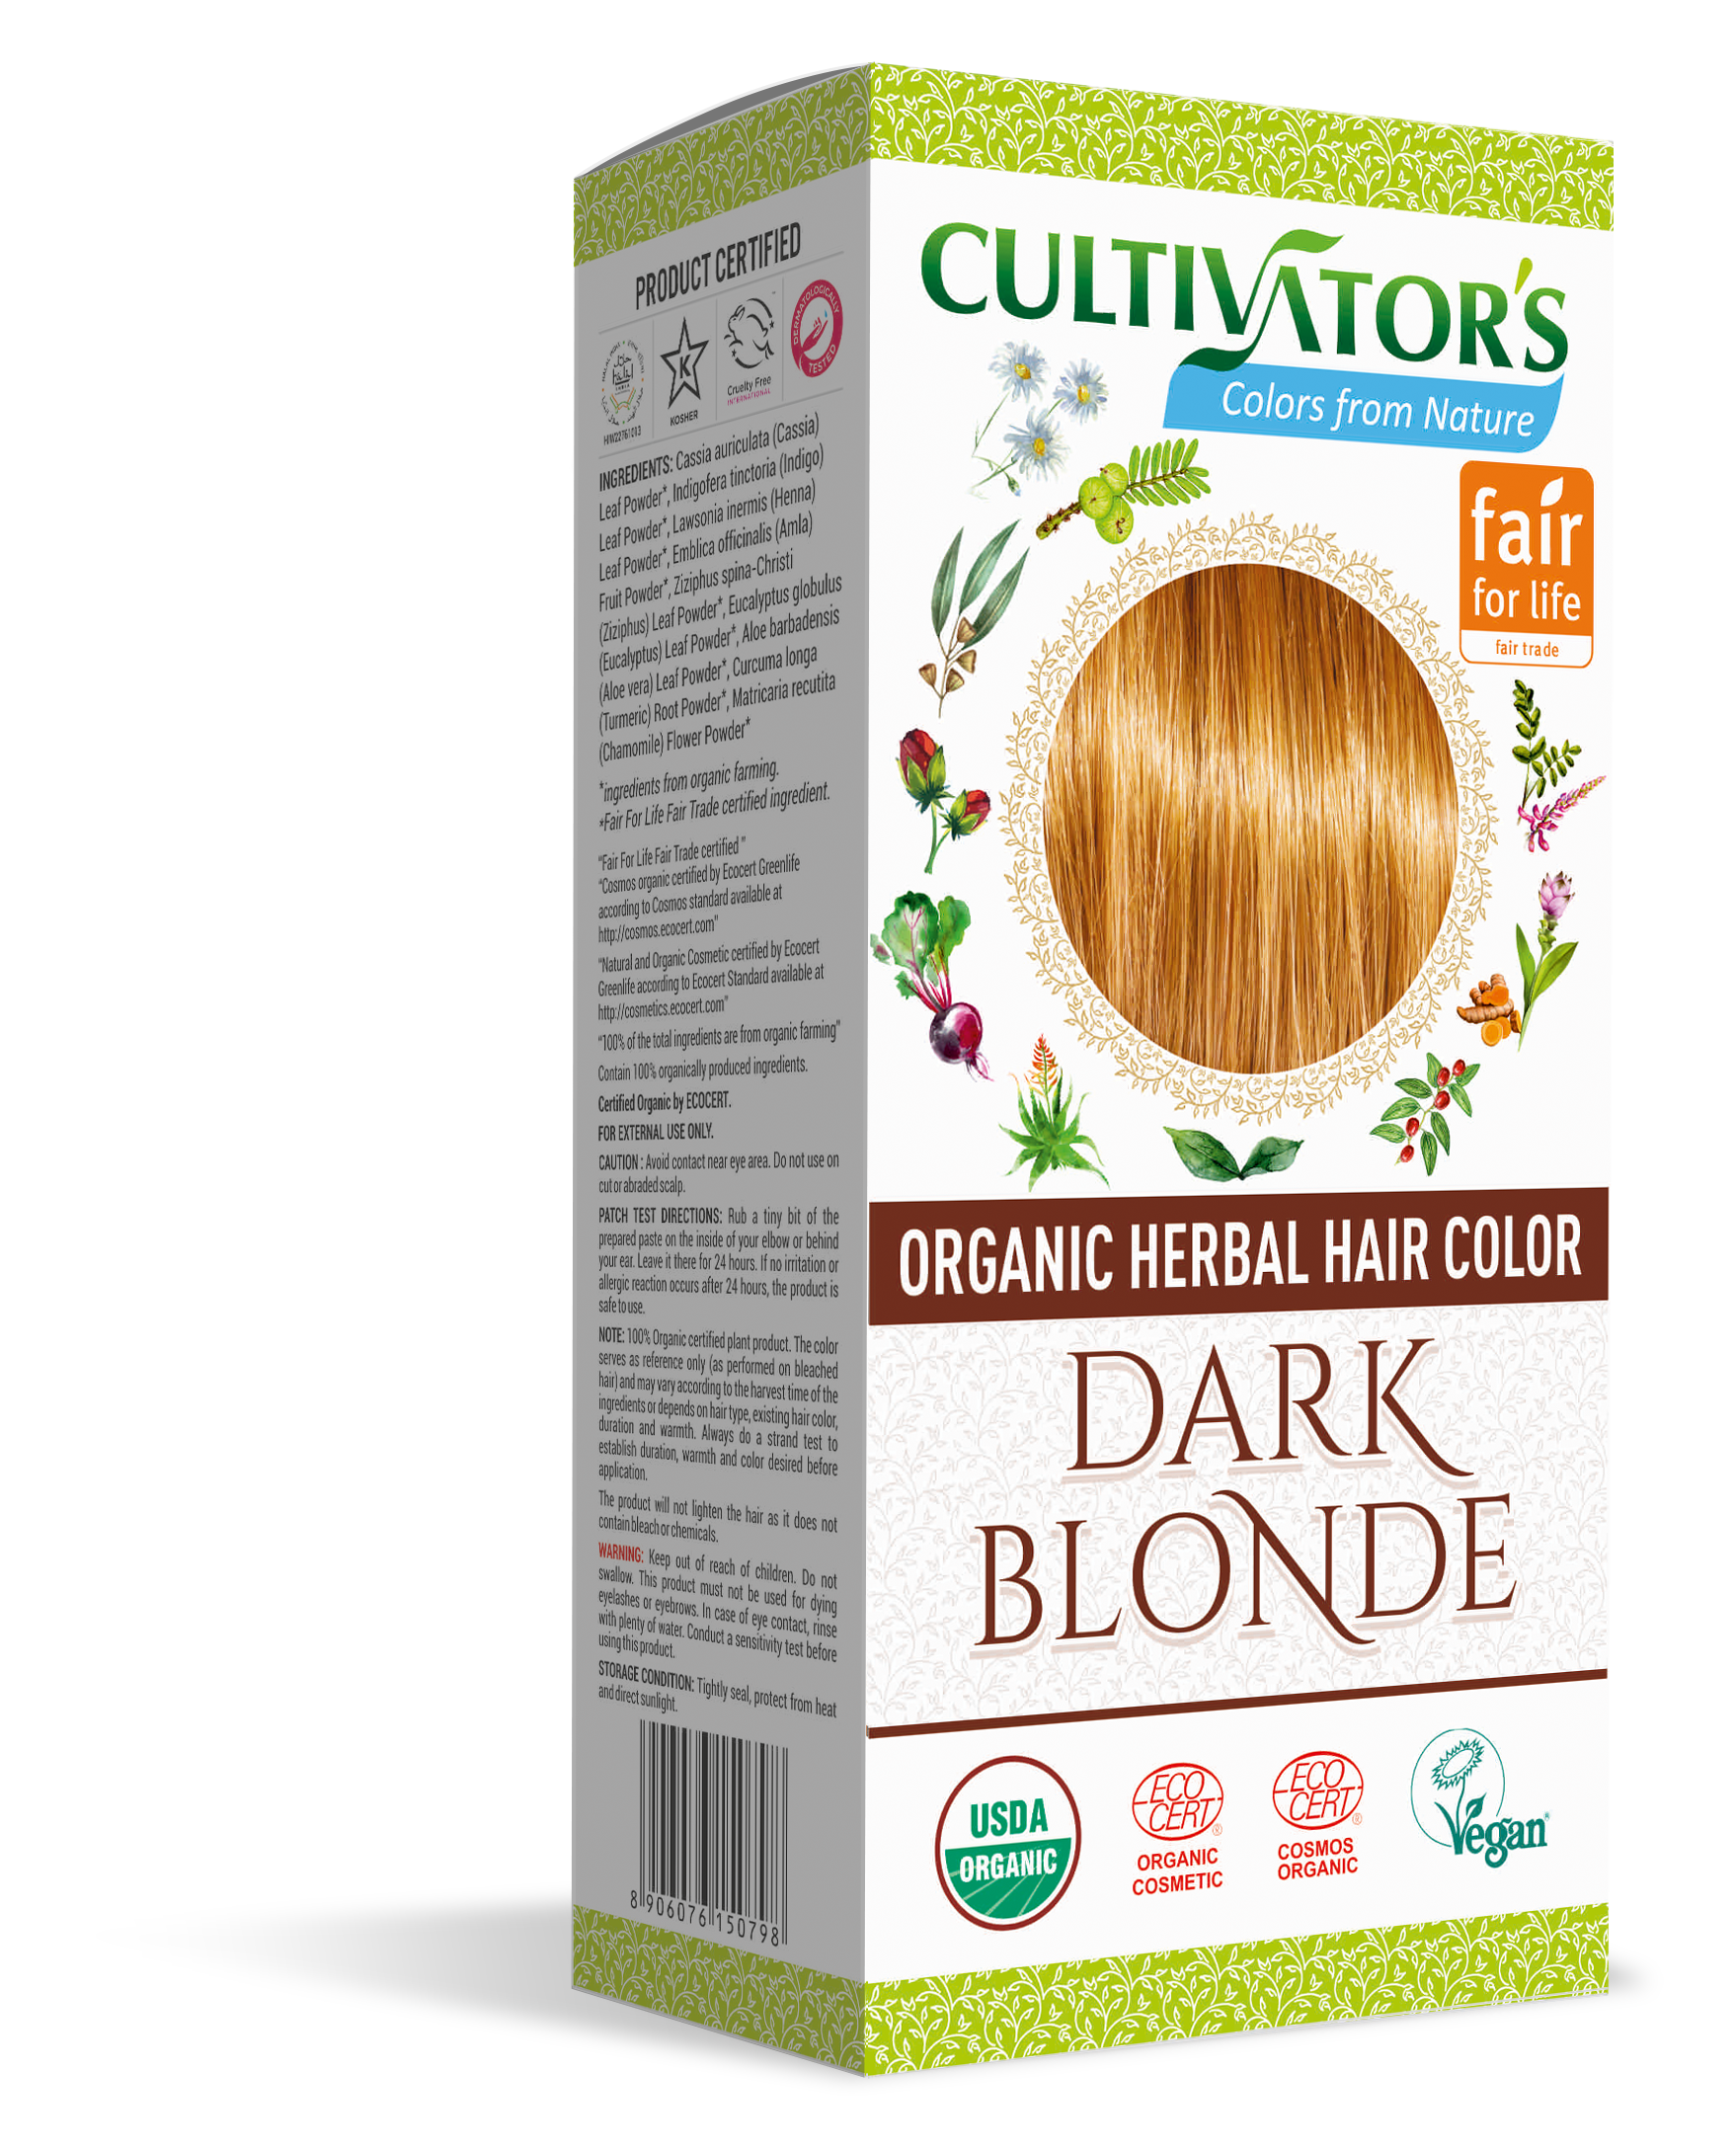 Explore Now | Organic Herbal Hair Color Dark Blonde by Cultivators